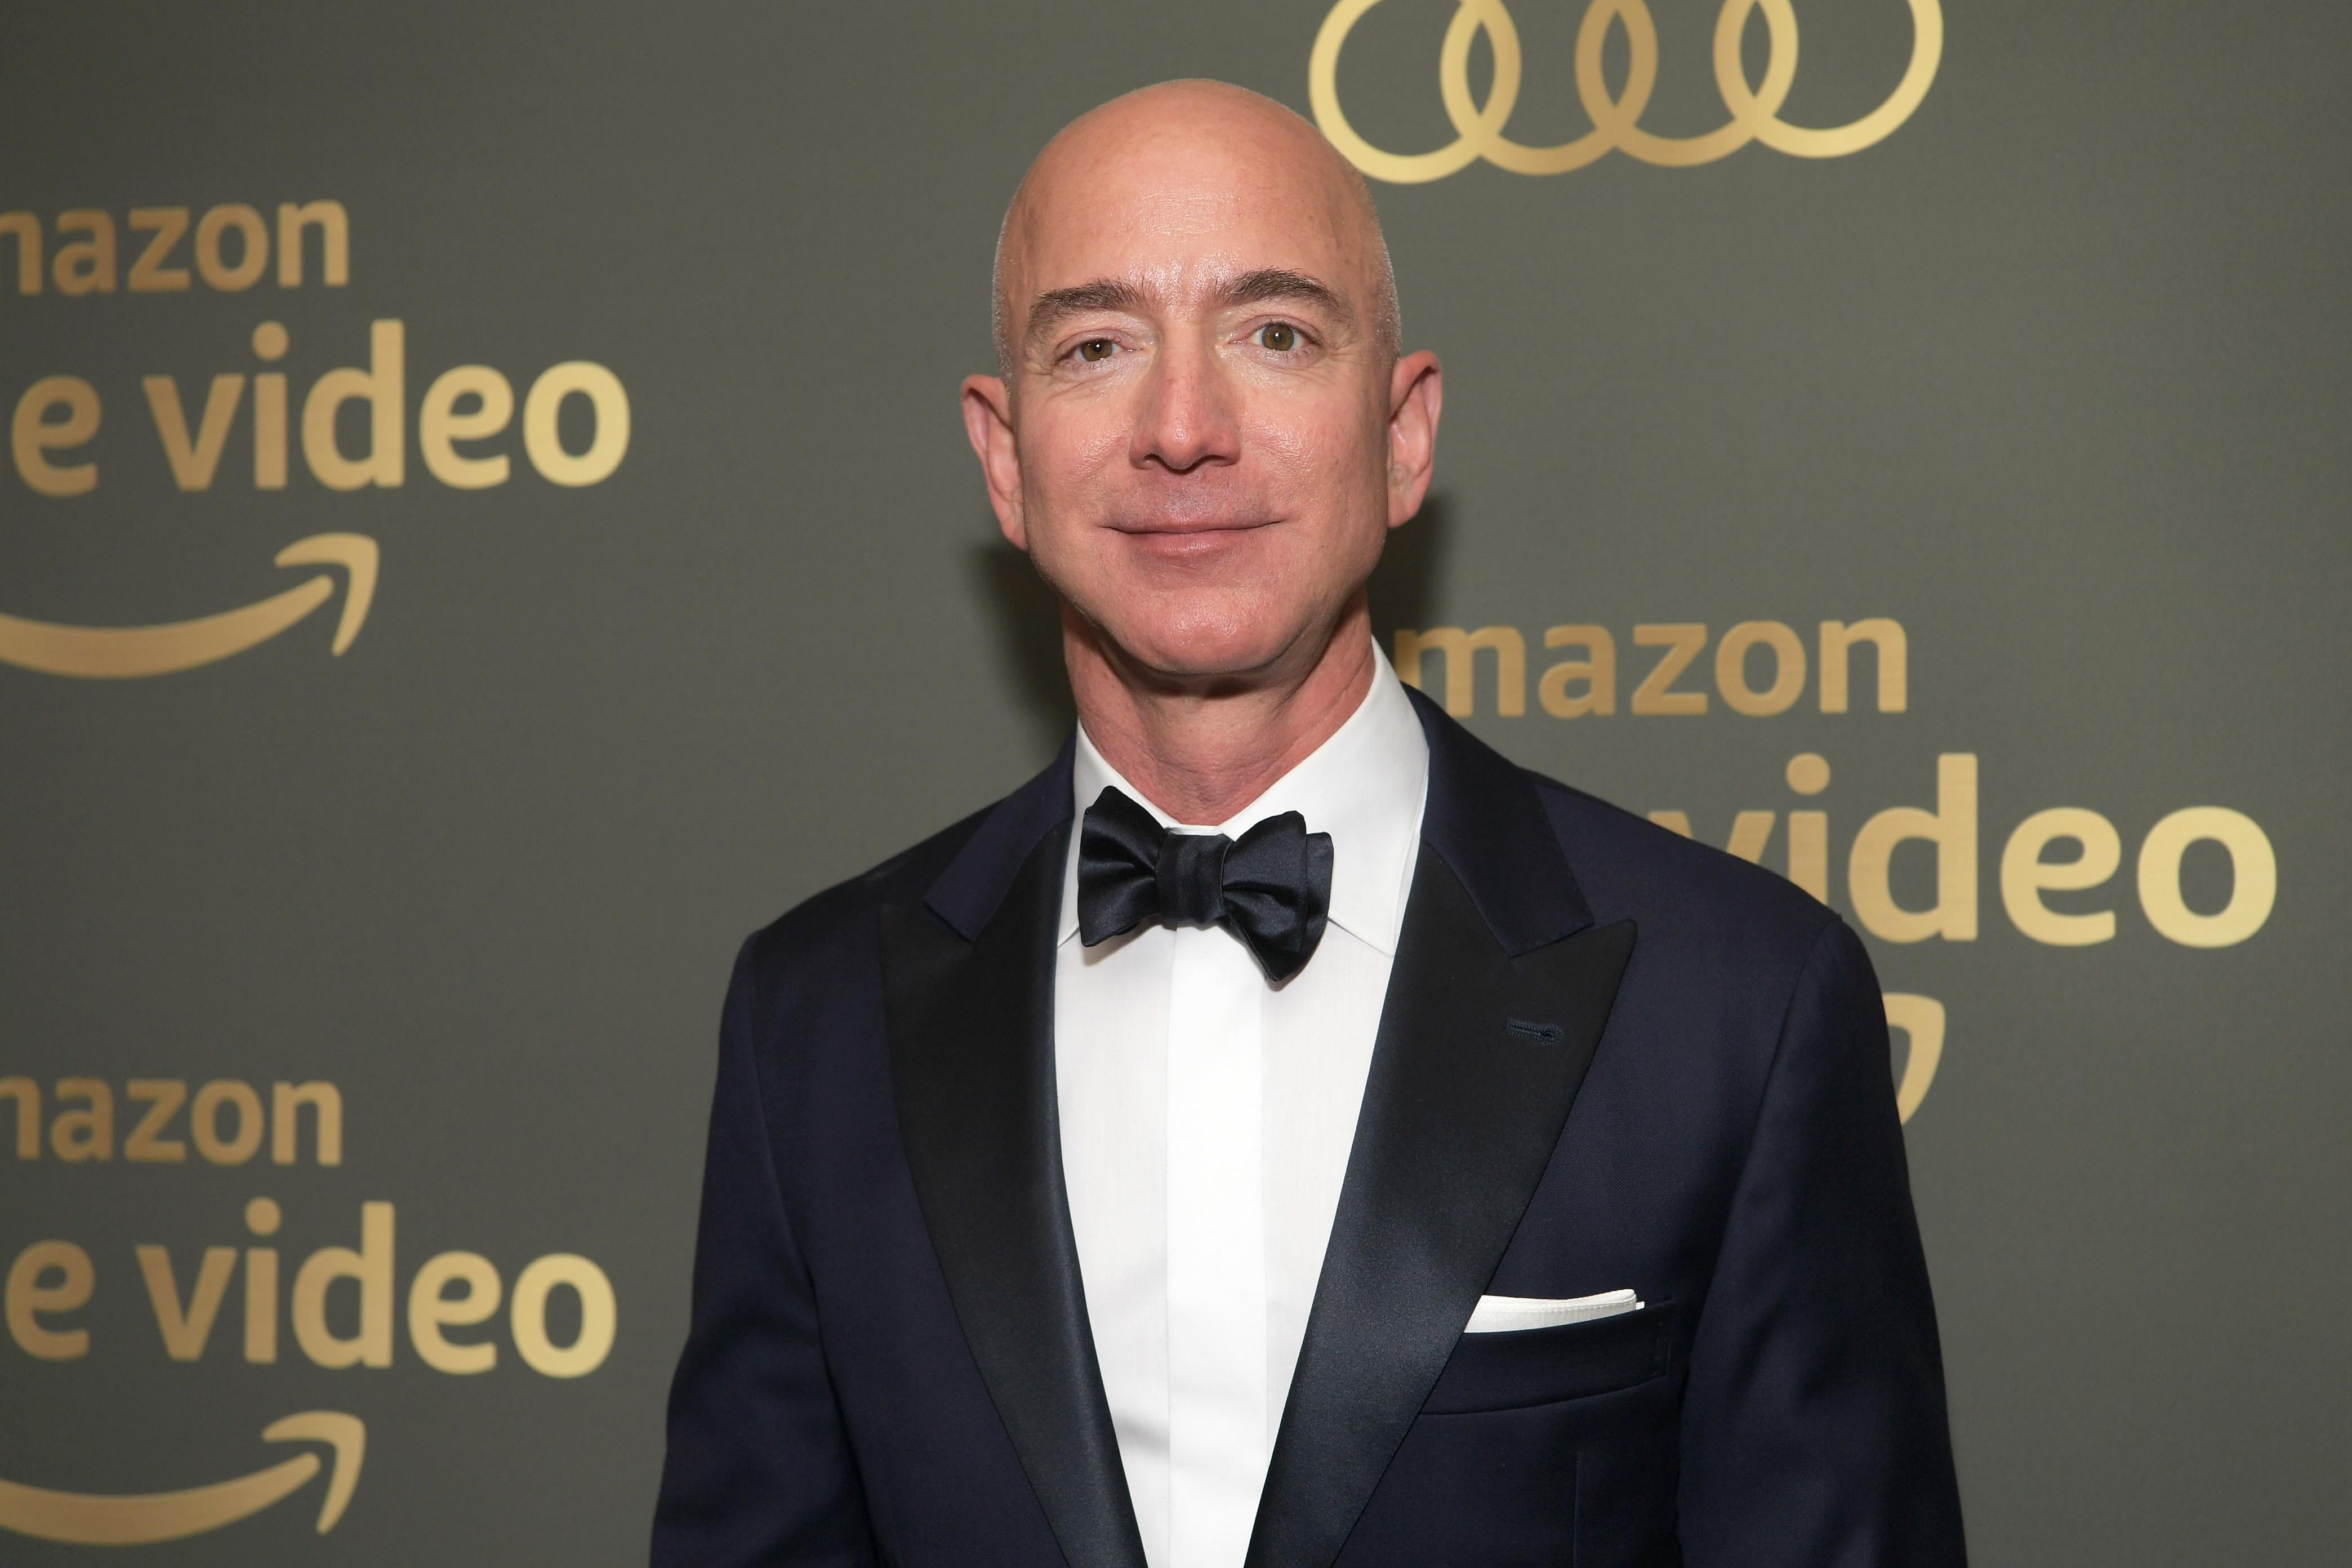 Bezos in front of a wall covered in Amazon Prime Video logos.